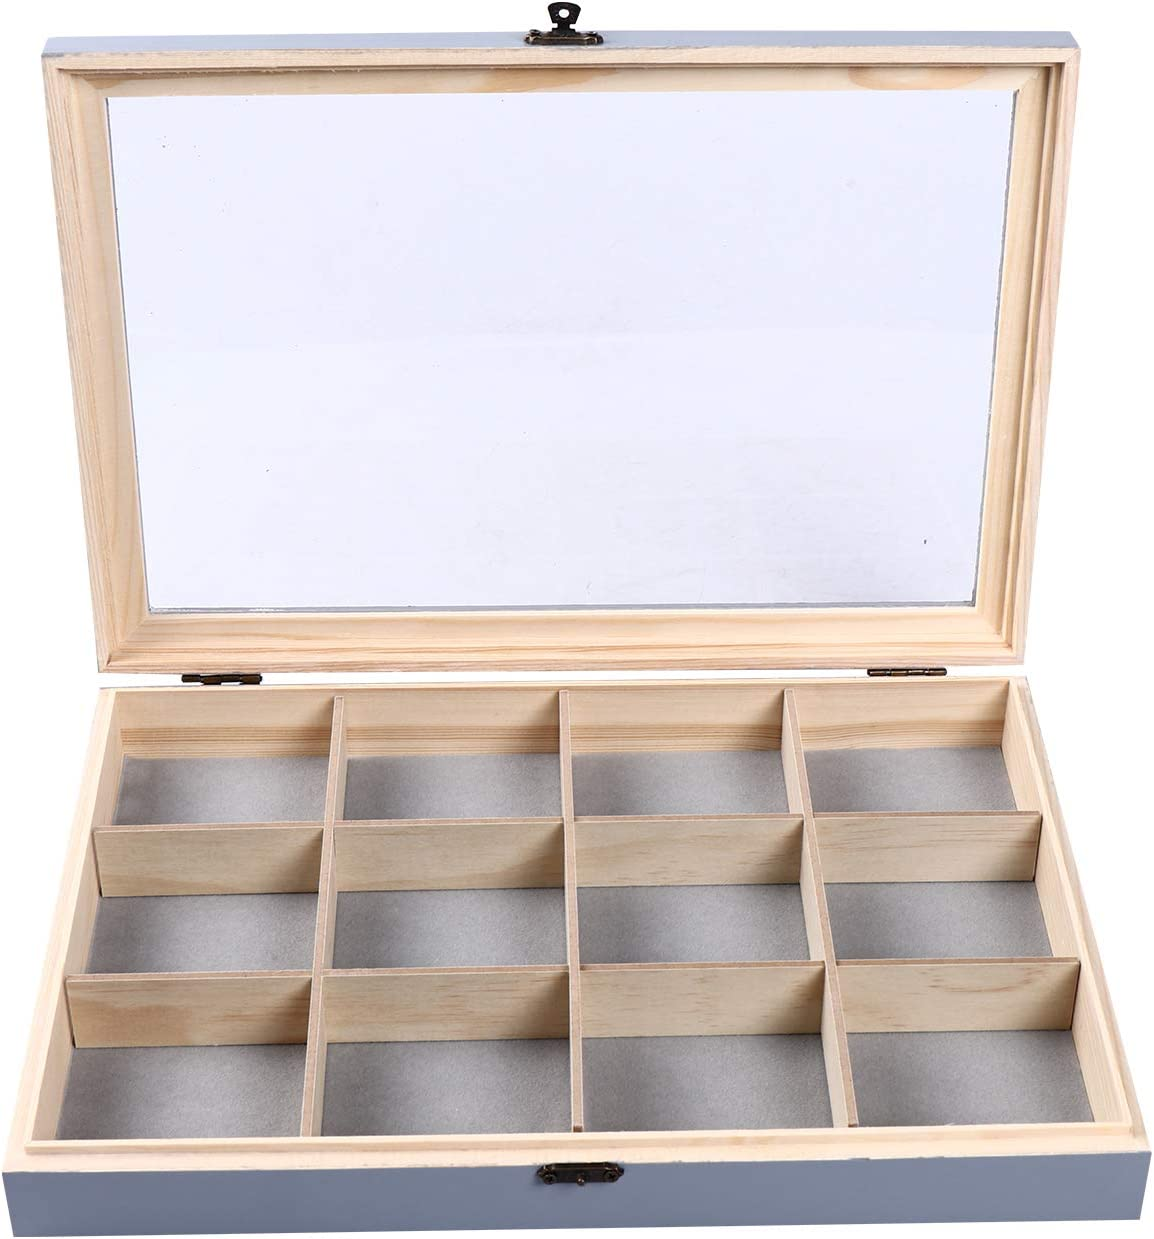 Y ME Wooden Jewelry Tray with Lid, Jewelry Display Organizer with Removable 12 Grid, Jewelry Storage Box for Rings, Earrings, Necklaces, Bracelet, Brooch Buttons, 13.8 x 9.5 x 2 inch Gray